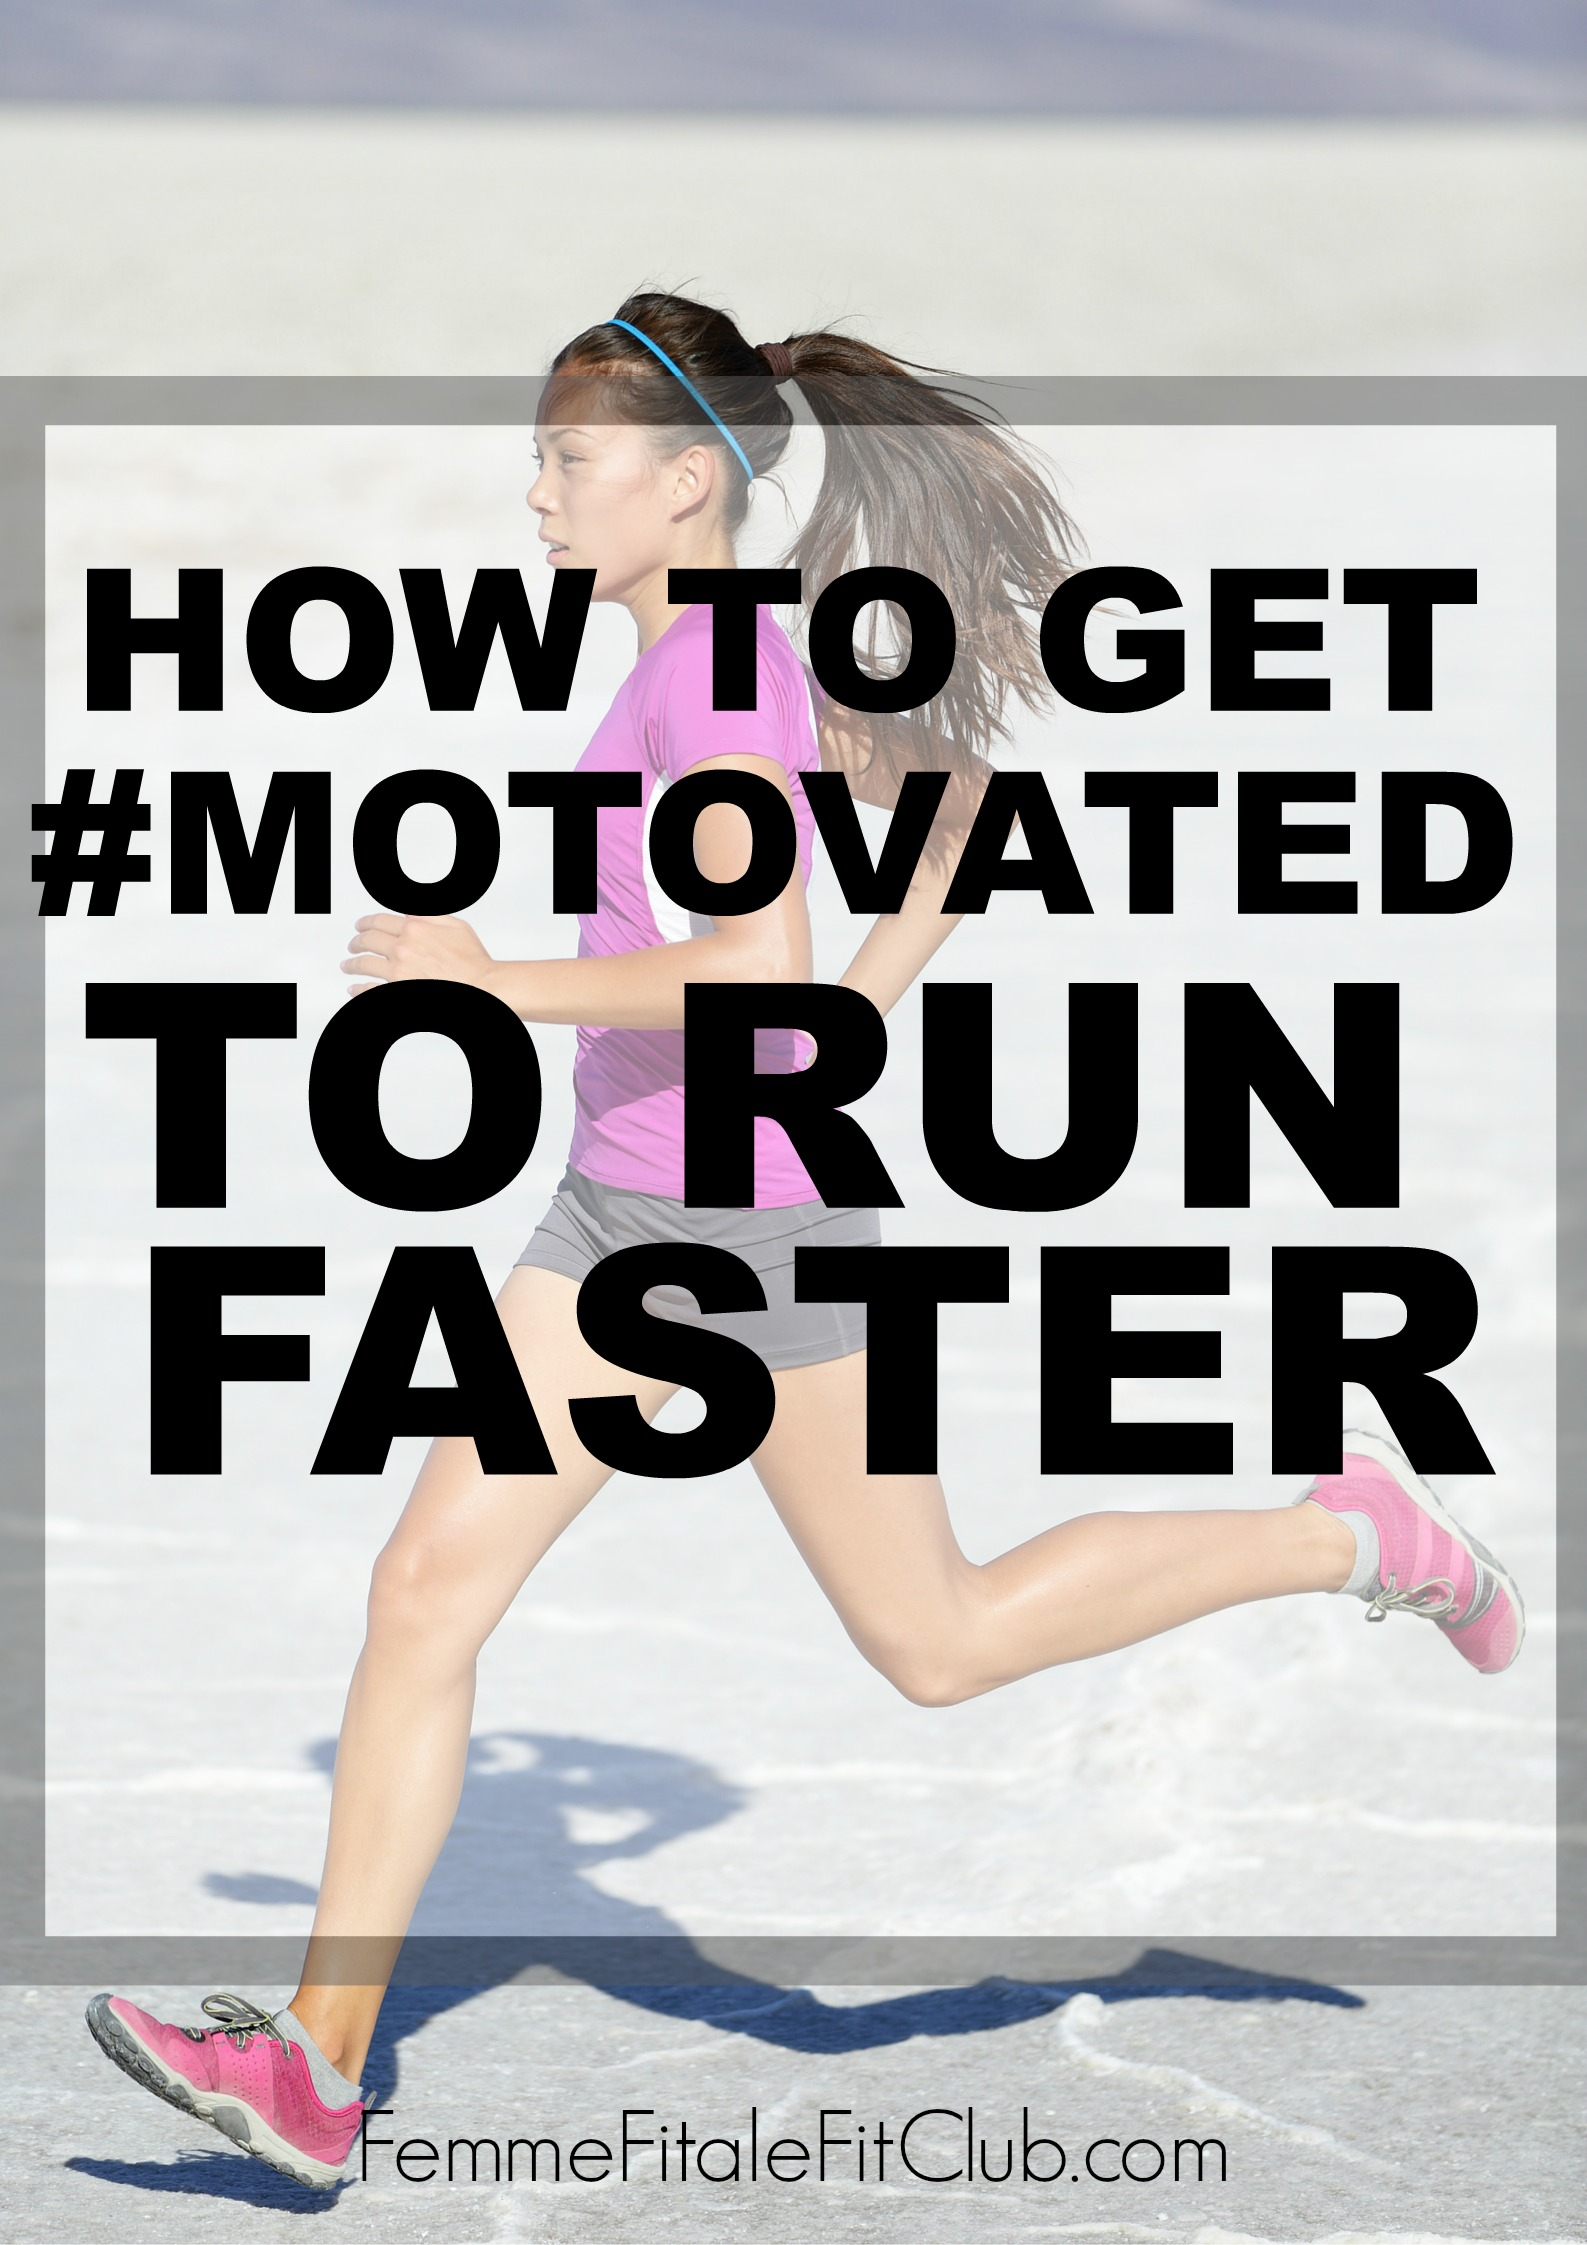 How To Get #motovated To Run Faster